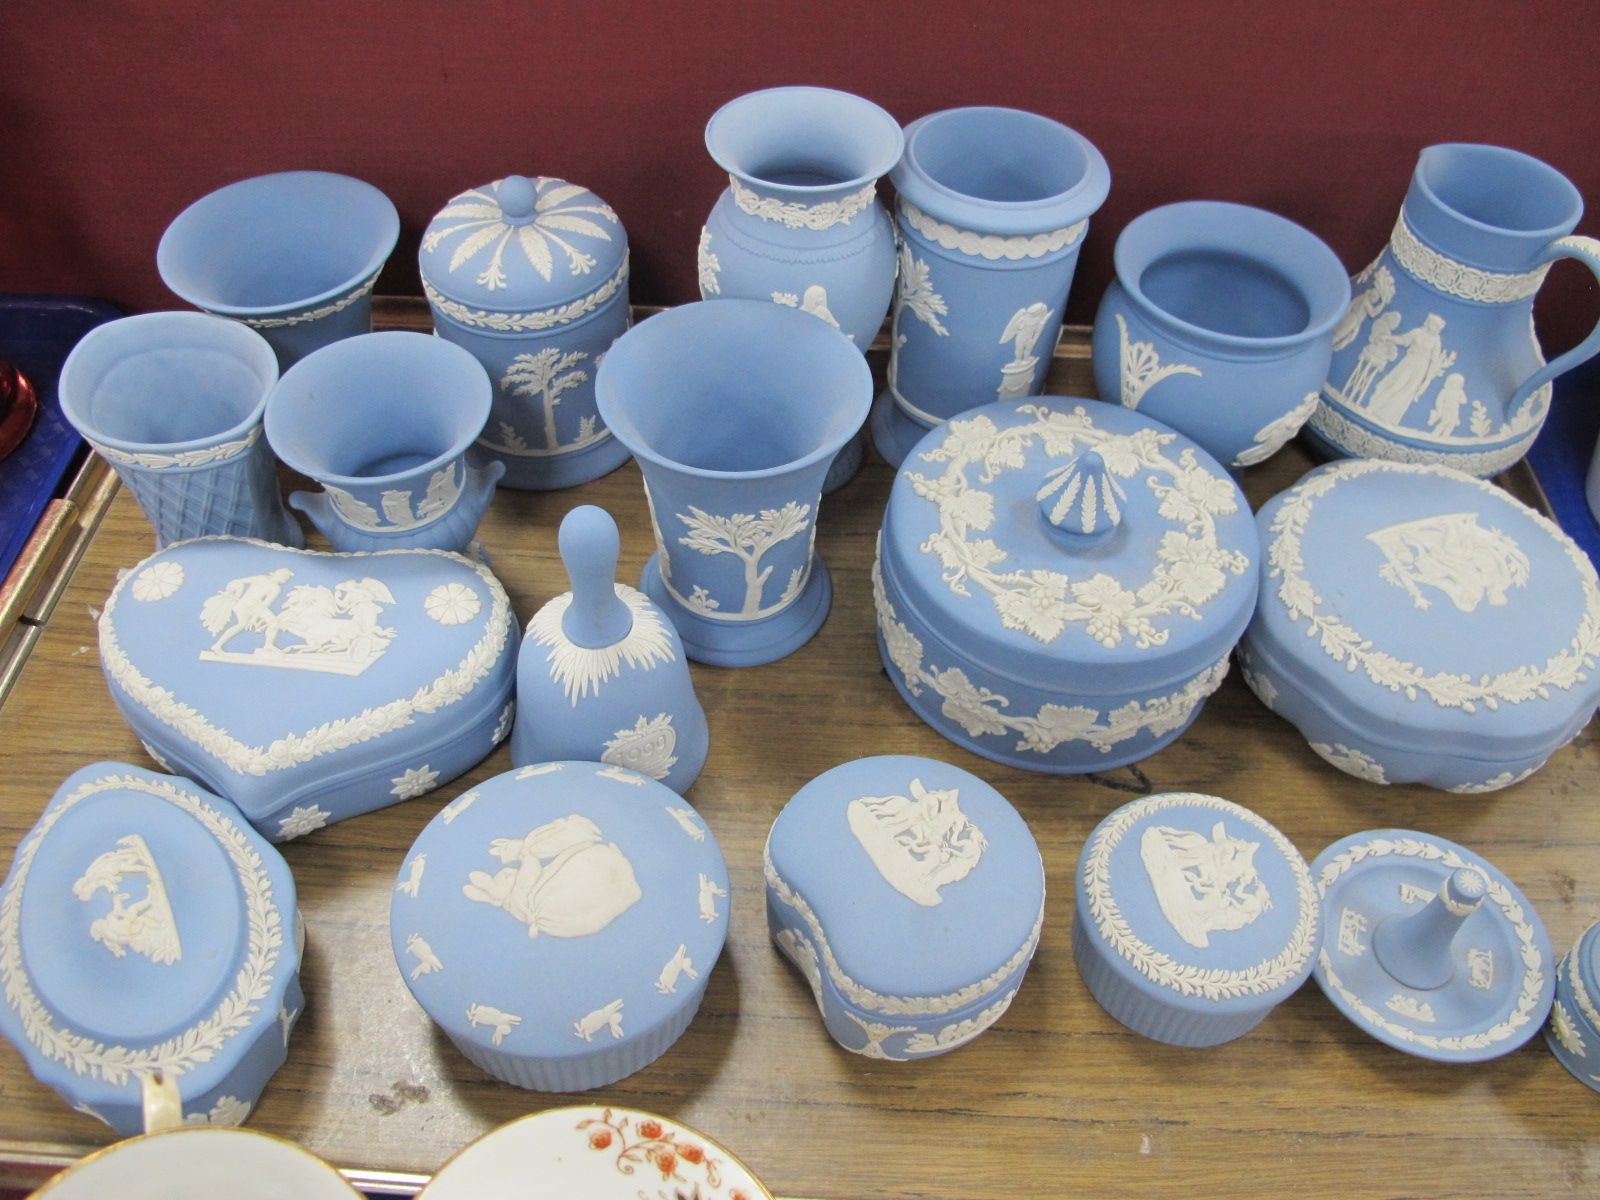 Wedgwood Powder Blue Jasper Ware Pottery, of nineteen pieces, including vases, heart shaped and